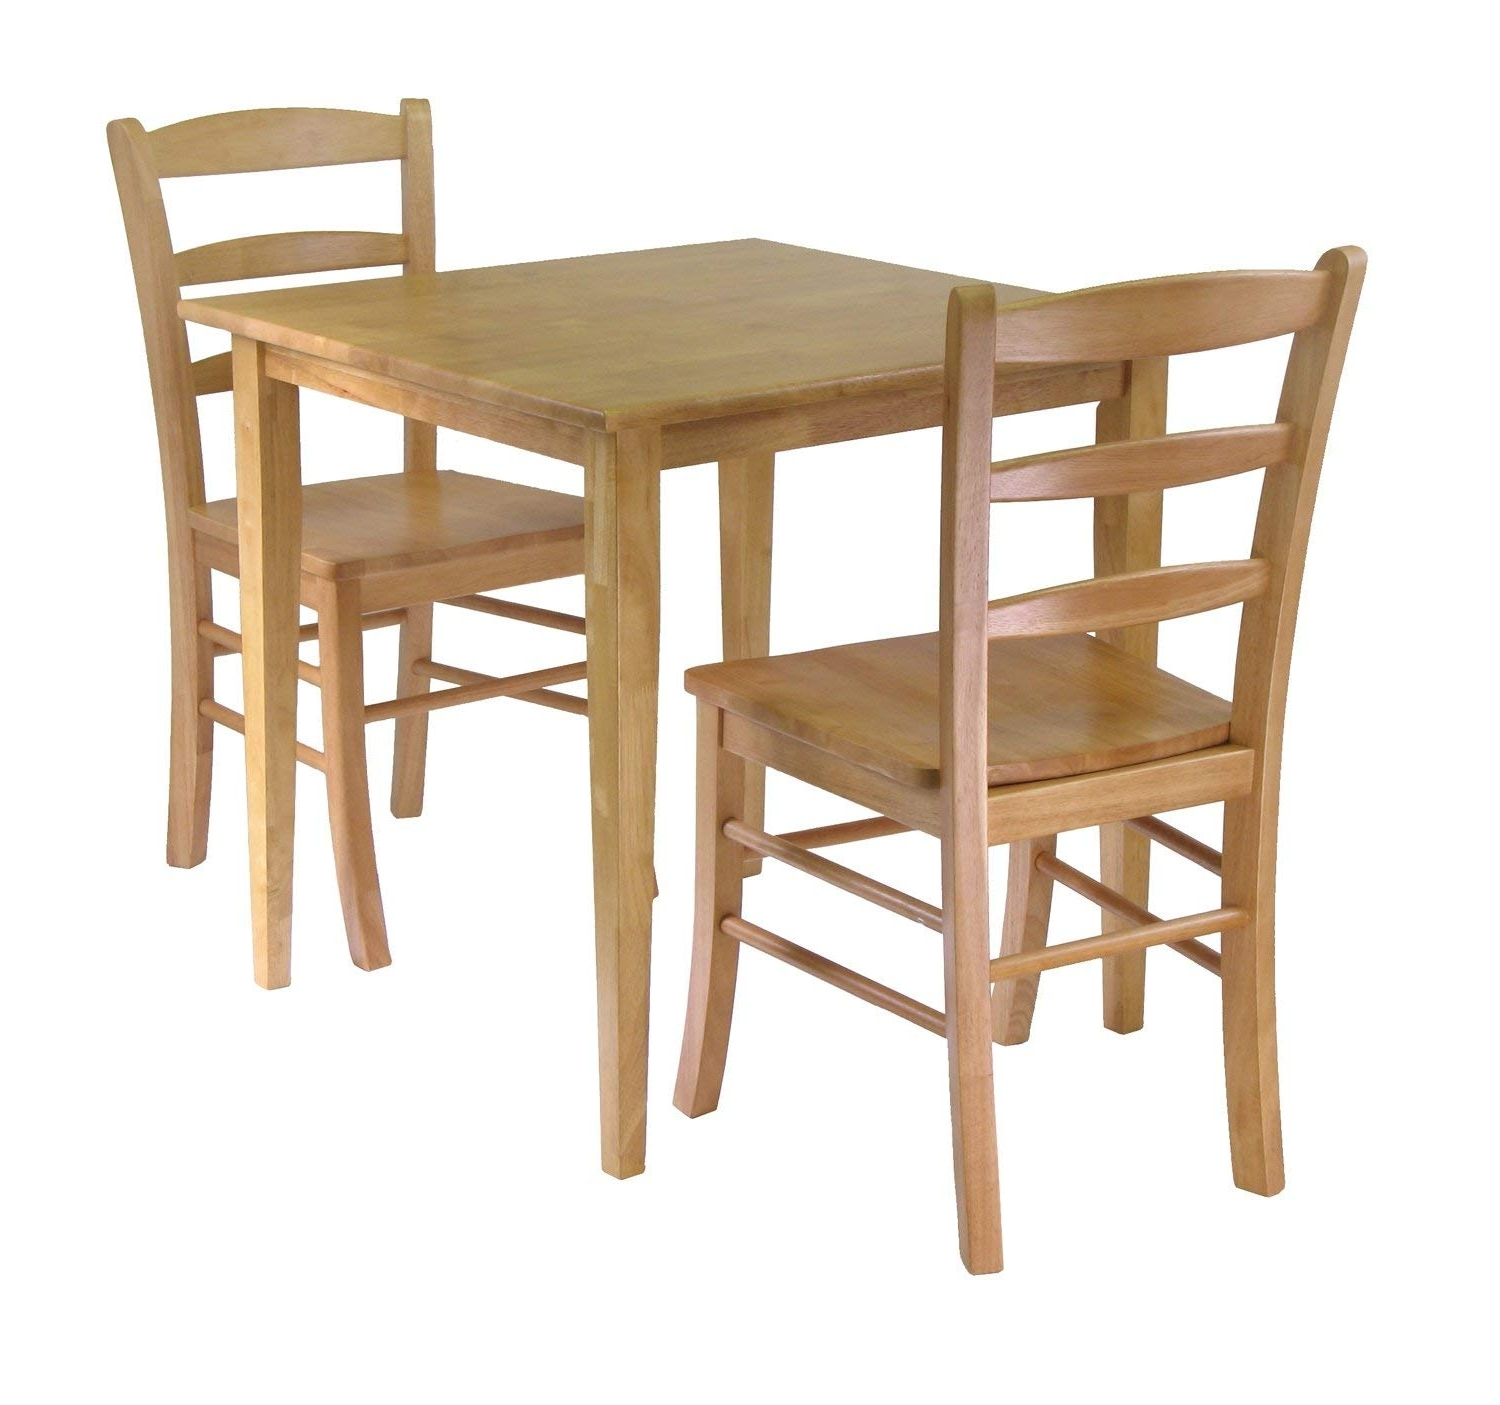 Amazon – Winsome Groveland Square Dining Table With 2 Chairs, 3 With Regard To Well Known Dining Tables For Two (View 4 of 25)